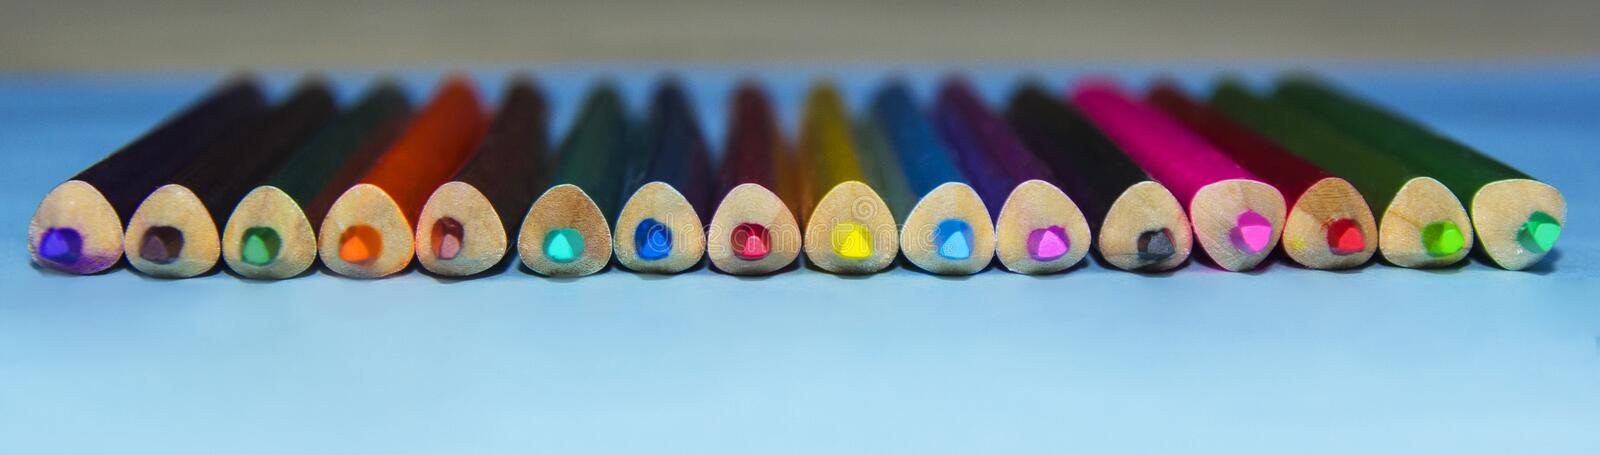 Colored pencils on a blue background close-up. Beautiful colored pencils royalty free stock photography